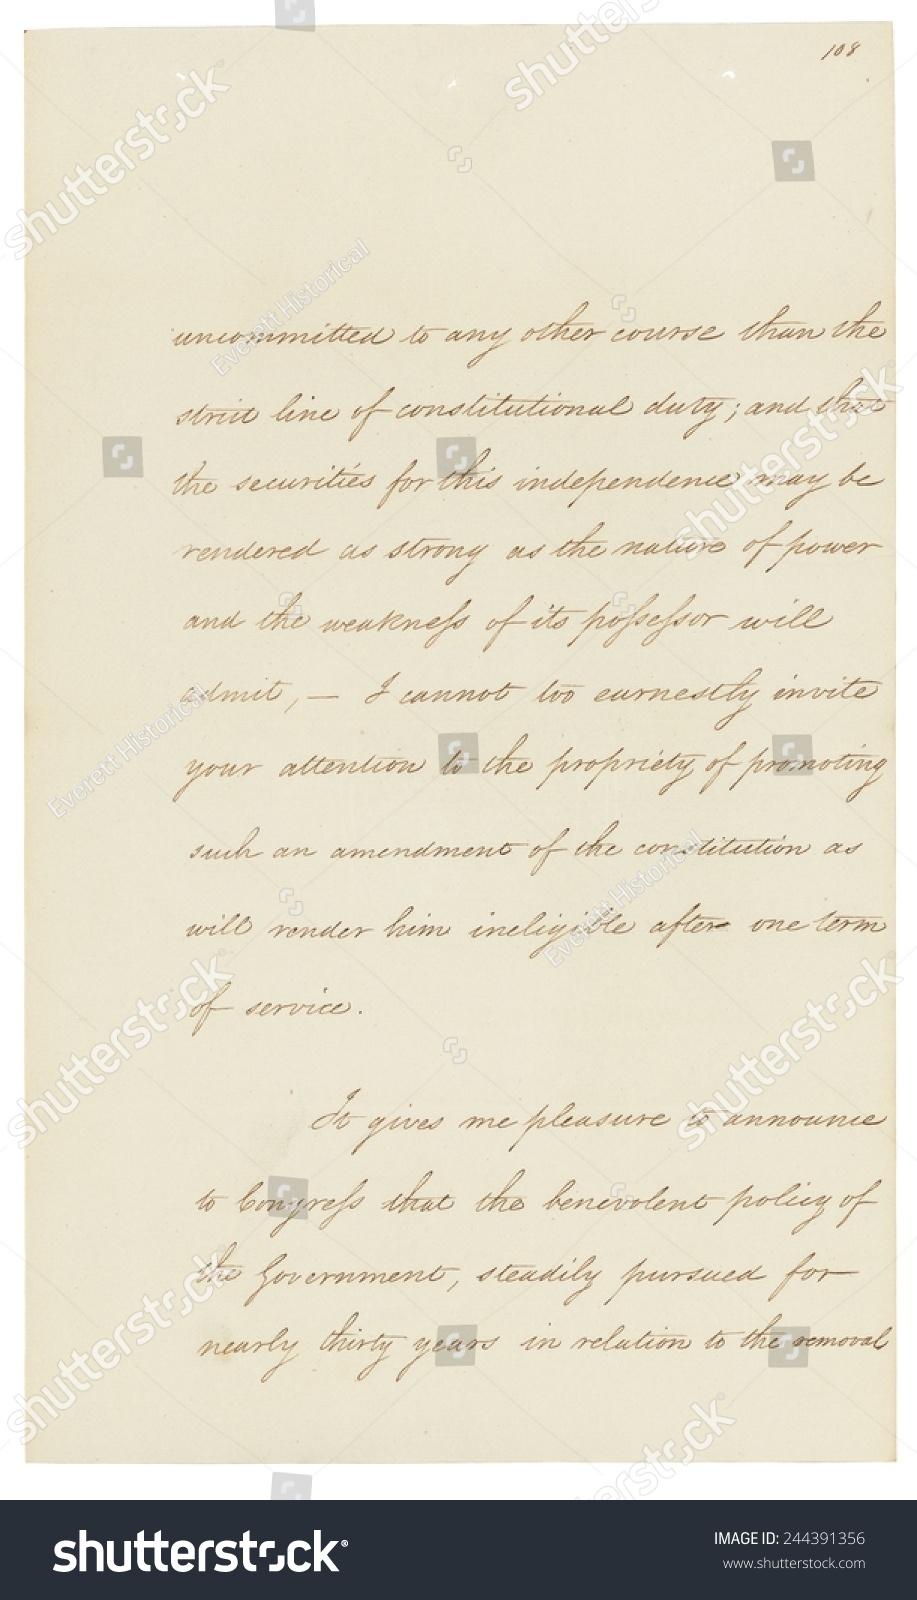 Indian removal act andrew jackson President Full Body Indian Removal Act Signed Into Law By President Andrew Jackson On May 28 1830 Movieweb Indian Removal Act Signed Into Law Stock Photo edit Now 244391356